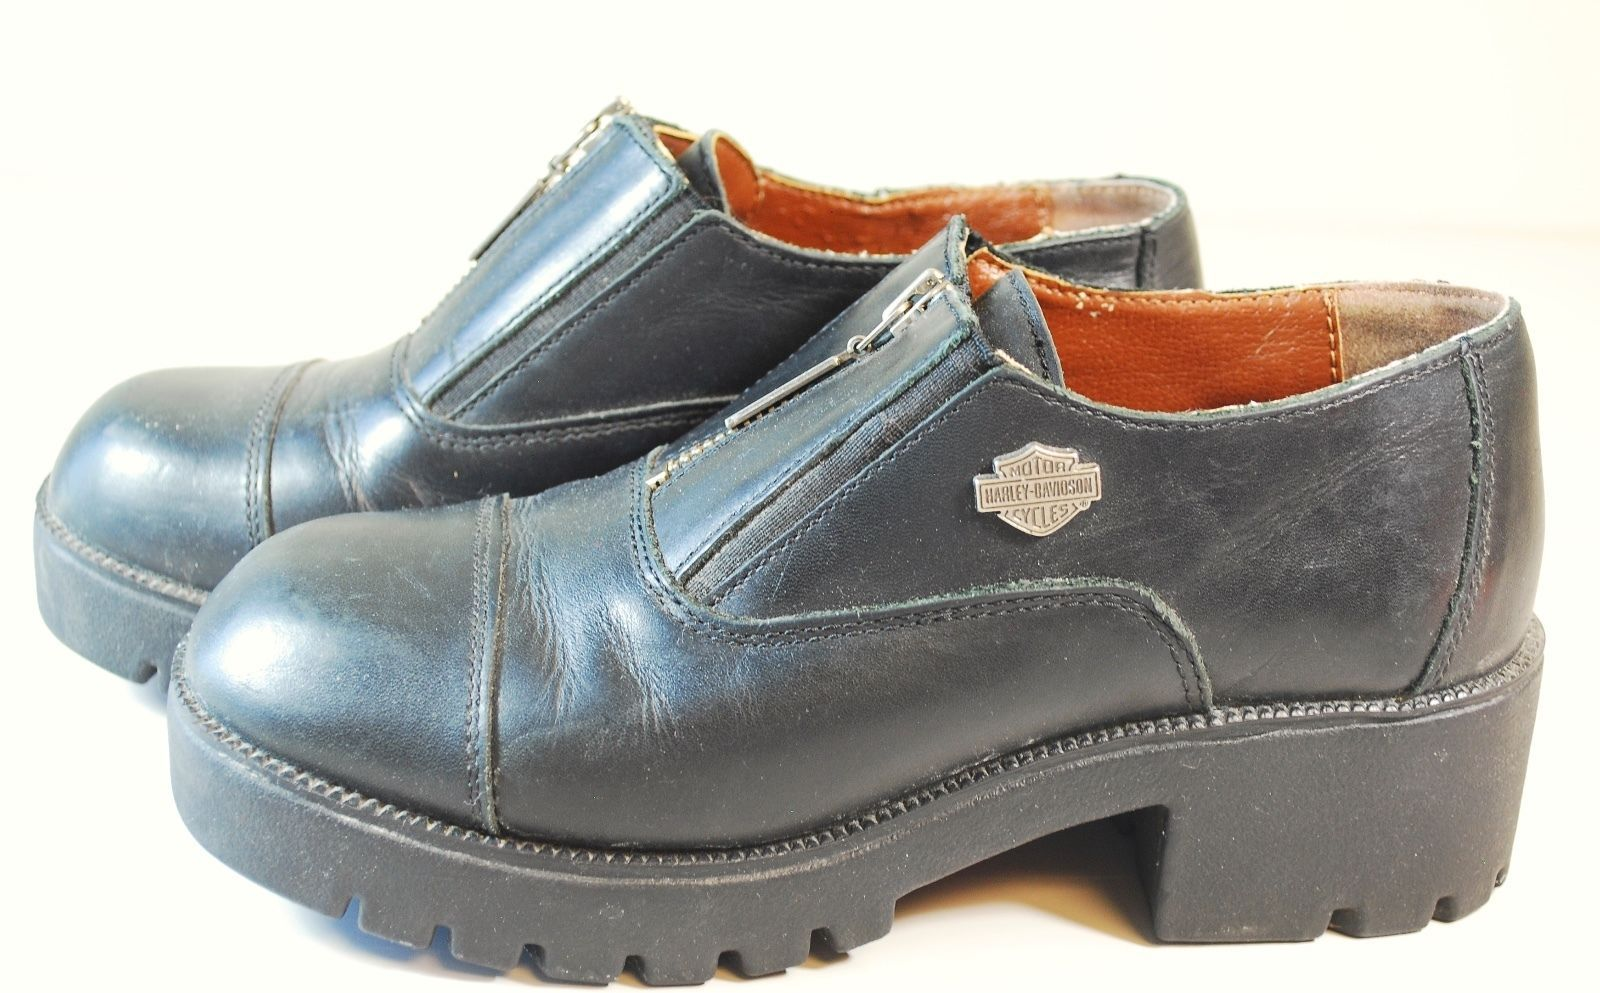 7b3fc60c76e0 57. 57. Previous. Harley Davidson Women s Motorcycle Boots Shoes Black  Leather Sz 6.5 Stock  82012